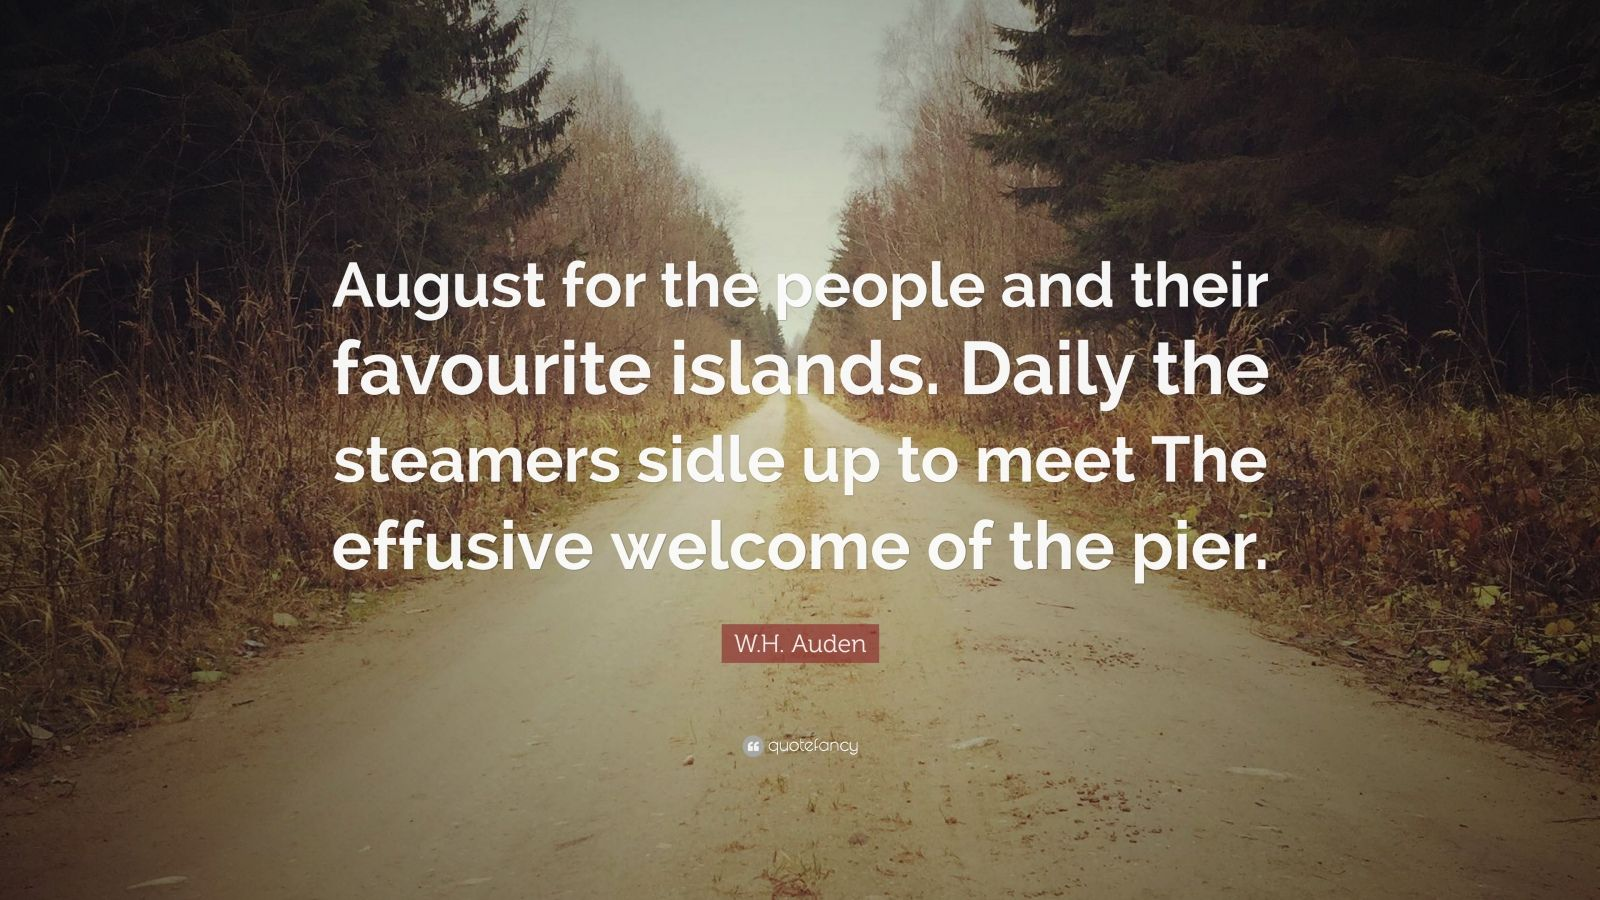 """W.H. Auden Quote: """"August for the people and their favourite islands. Daily the steamers sidle up to meet The effusive welcome of the pier."""""""